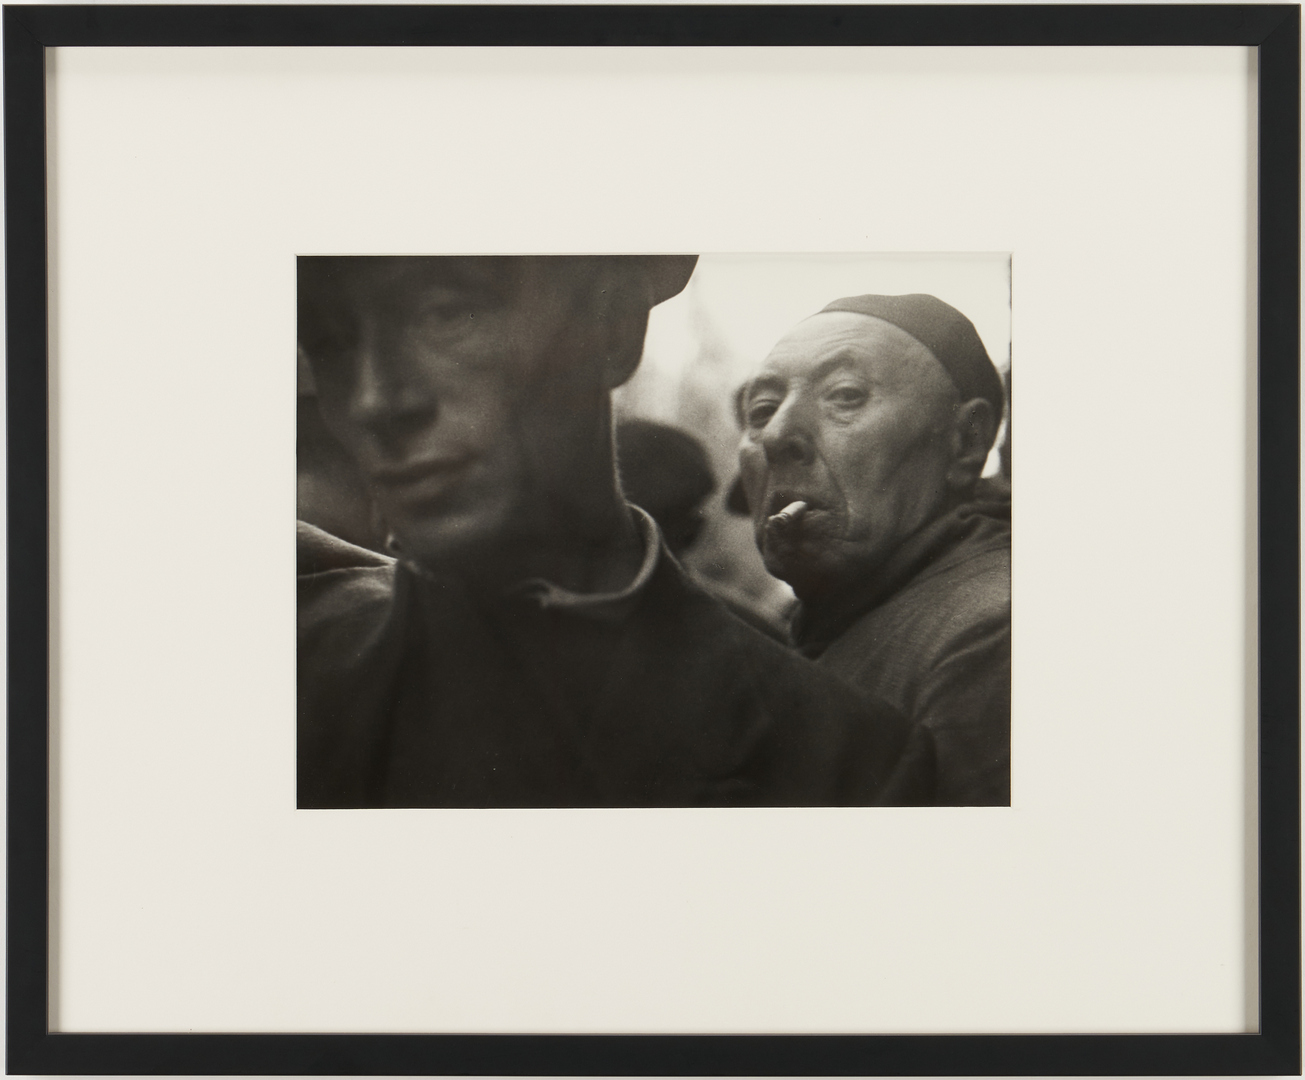 Lot 600: Leon Levinstein Photograph, Lower East Side